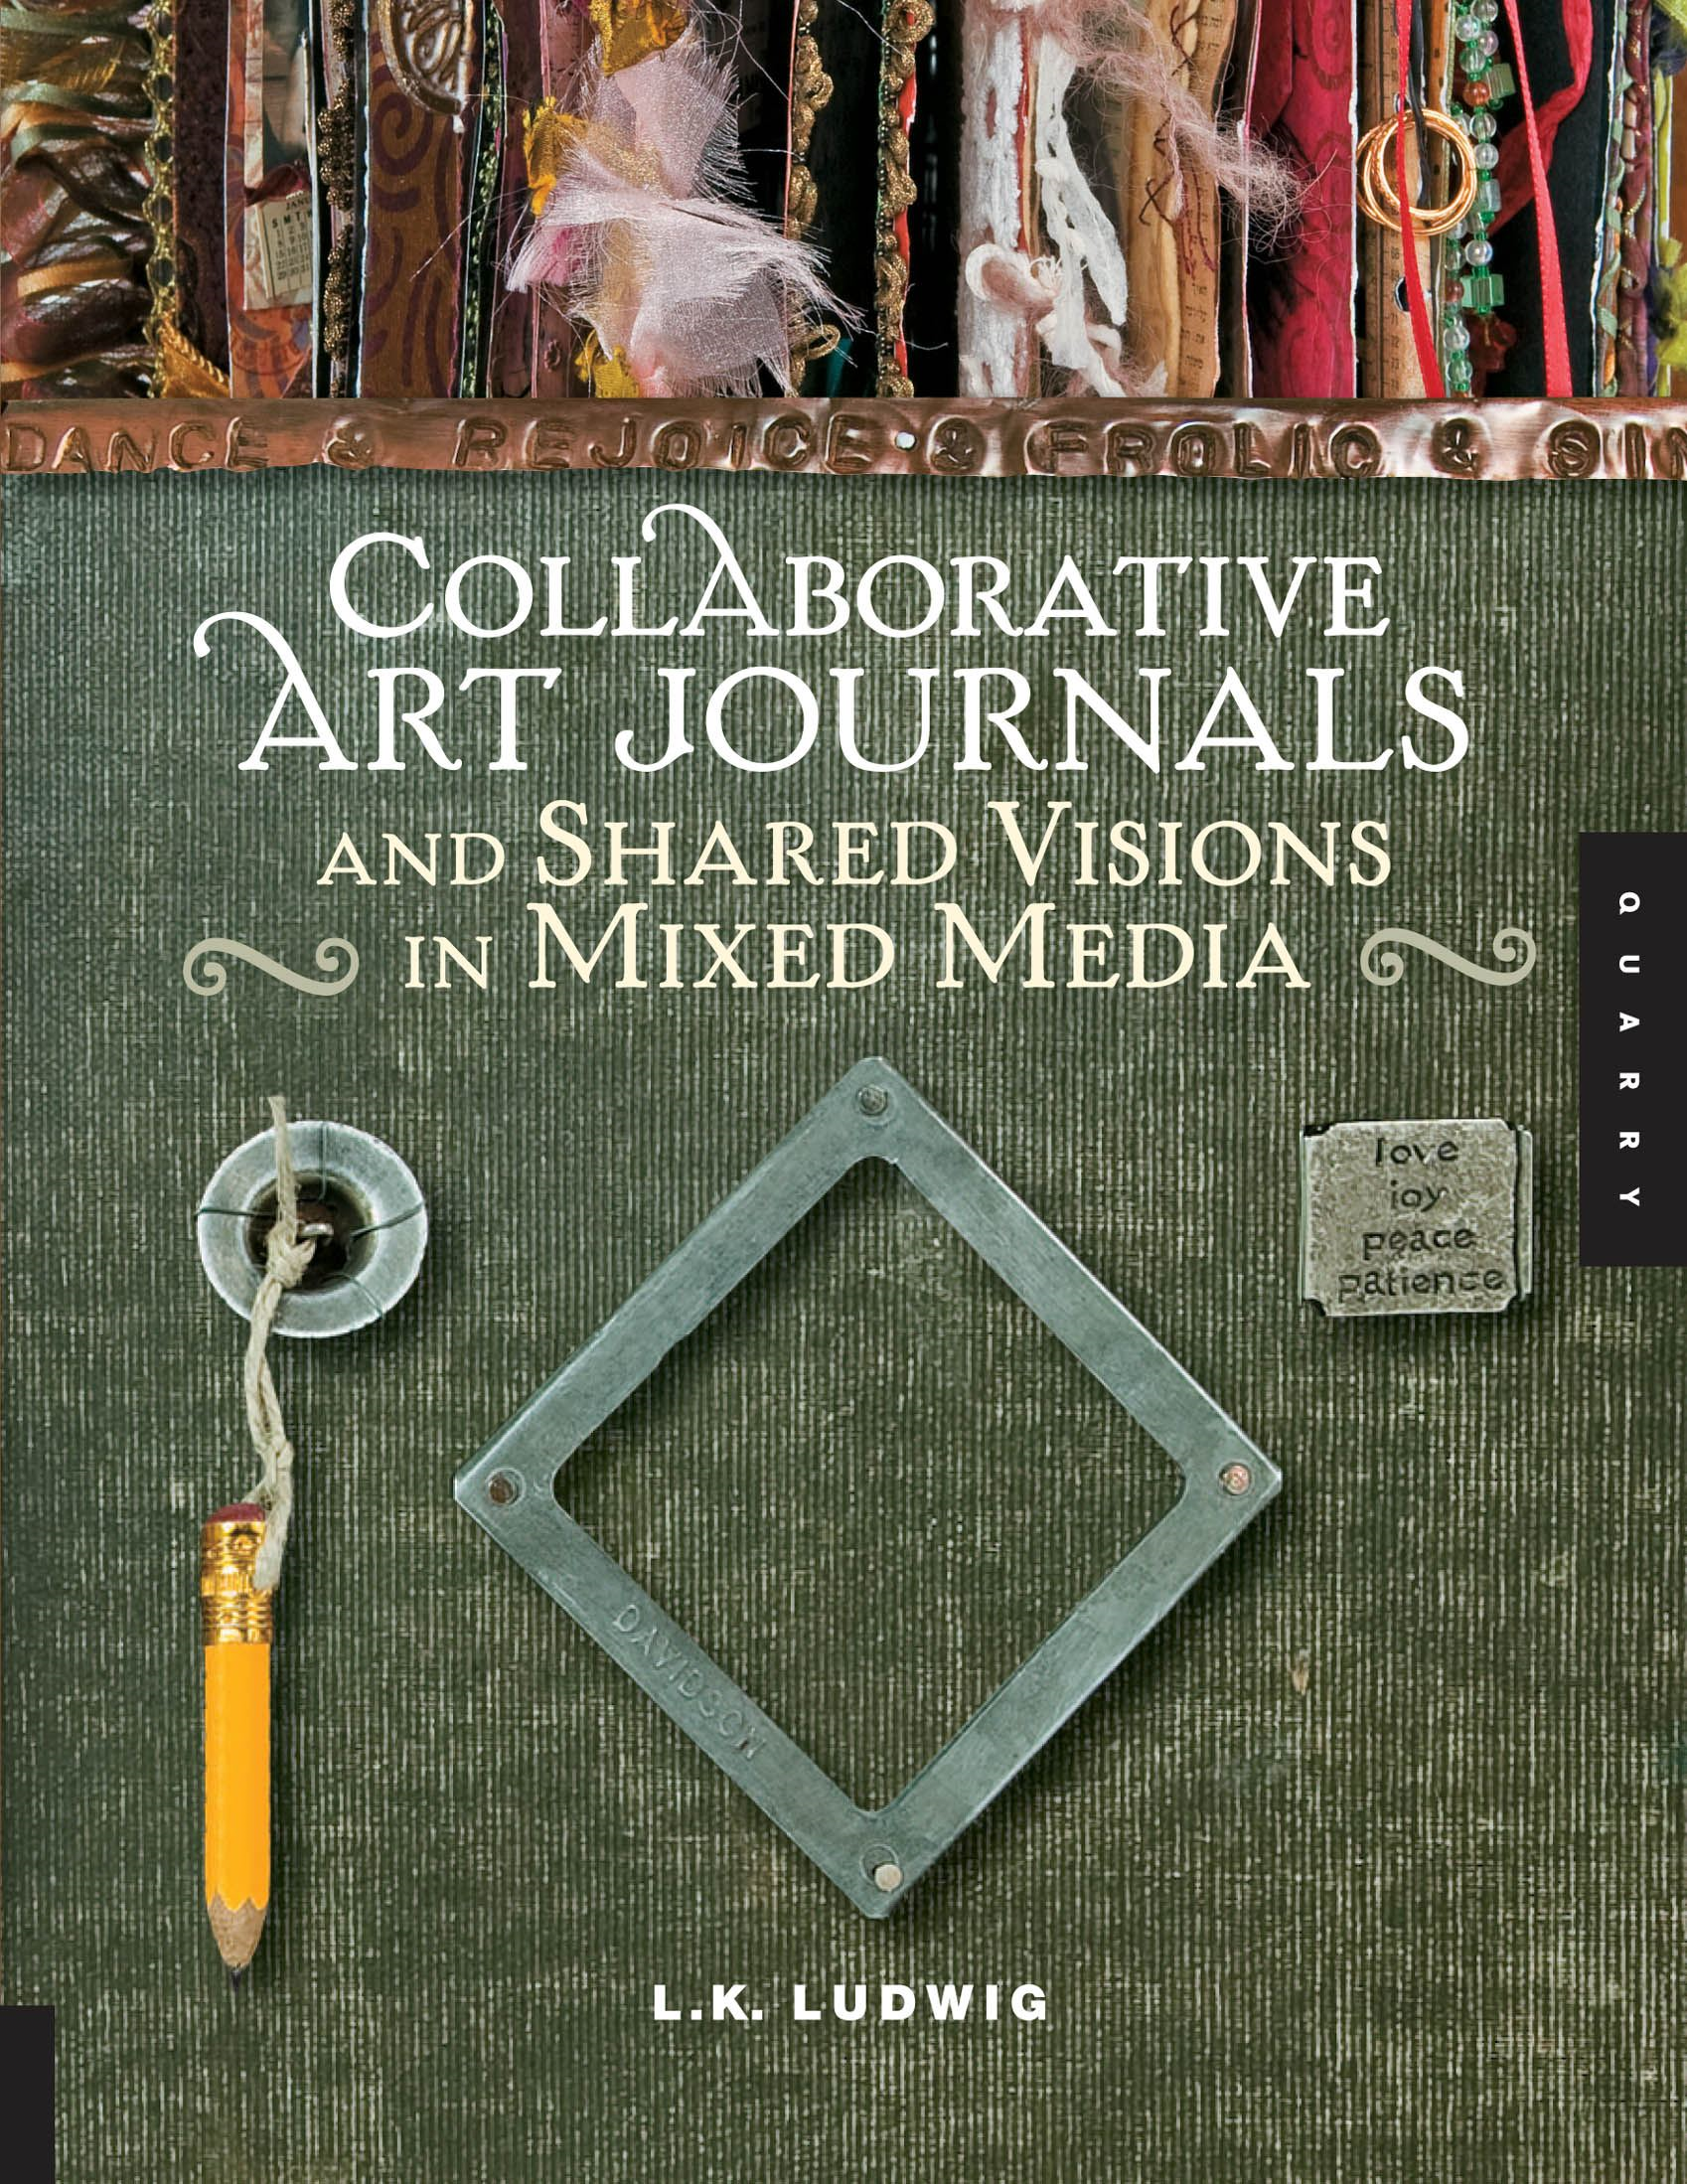 Collaborative Art Journals and Shared Visions in Mixed Media By: LK Ludwig